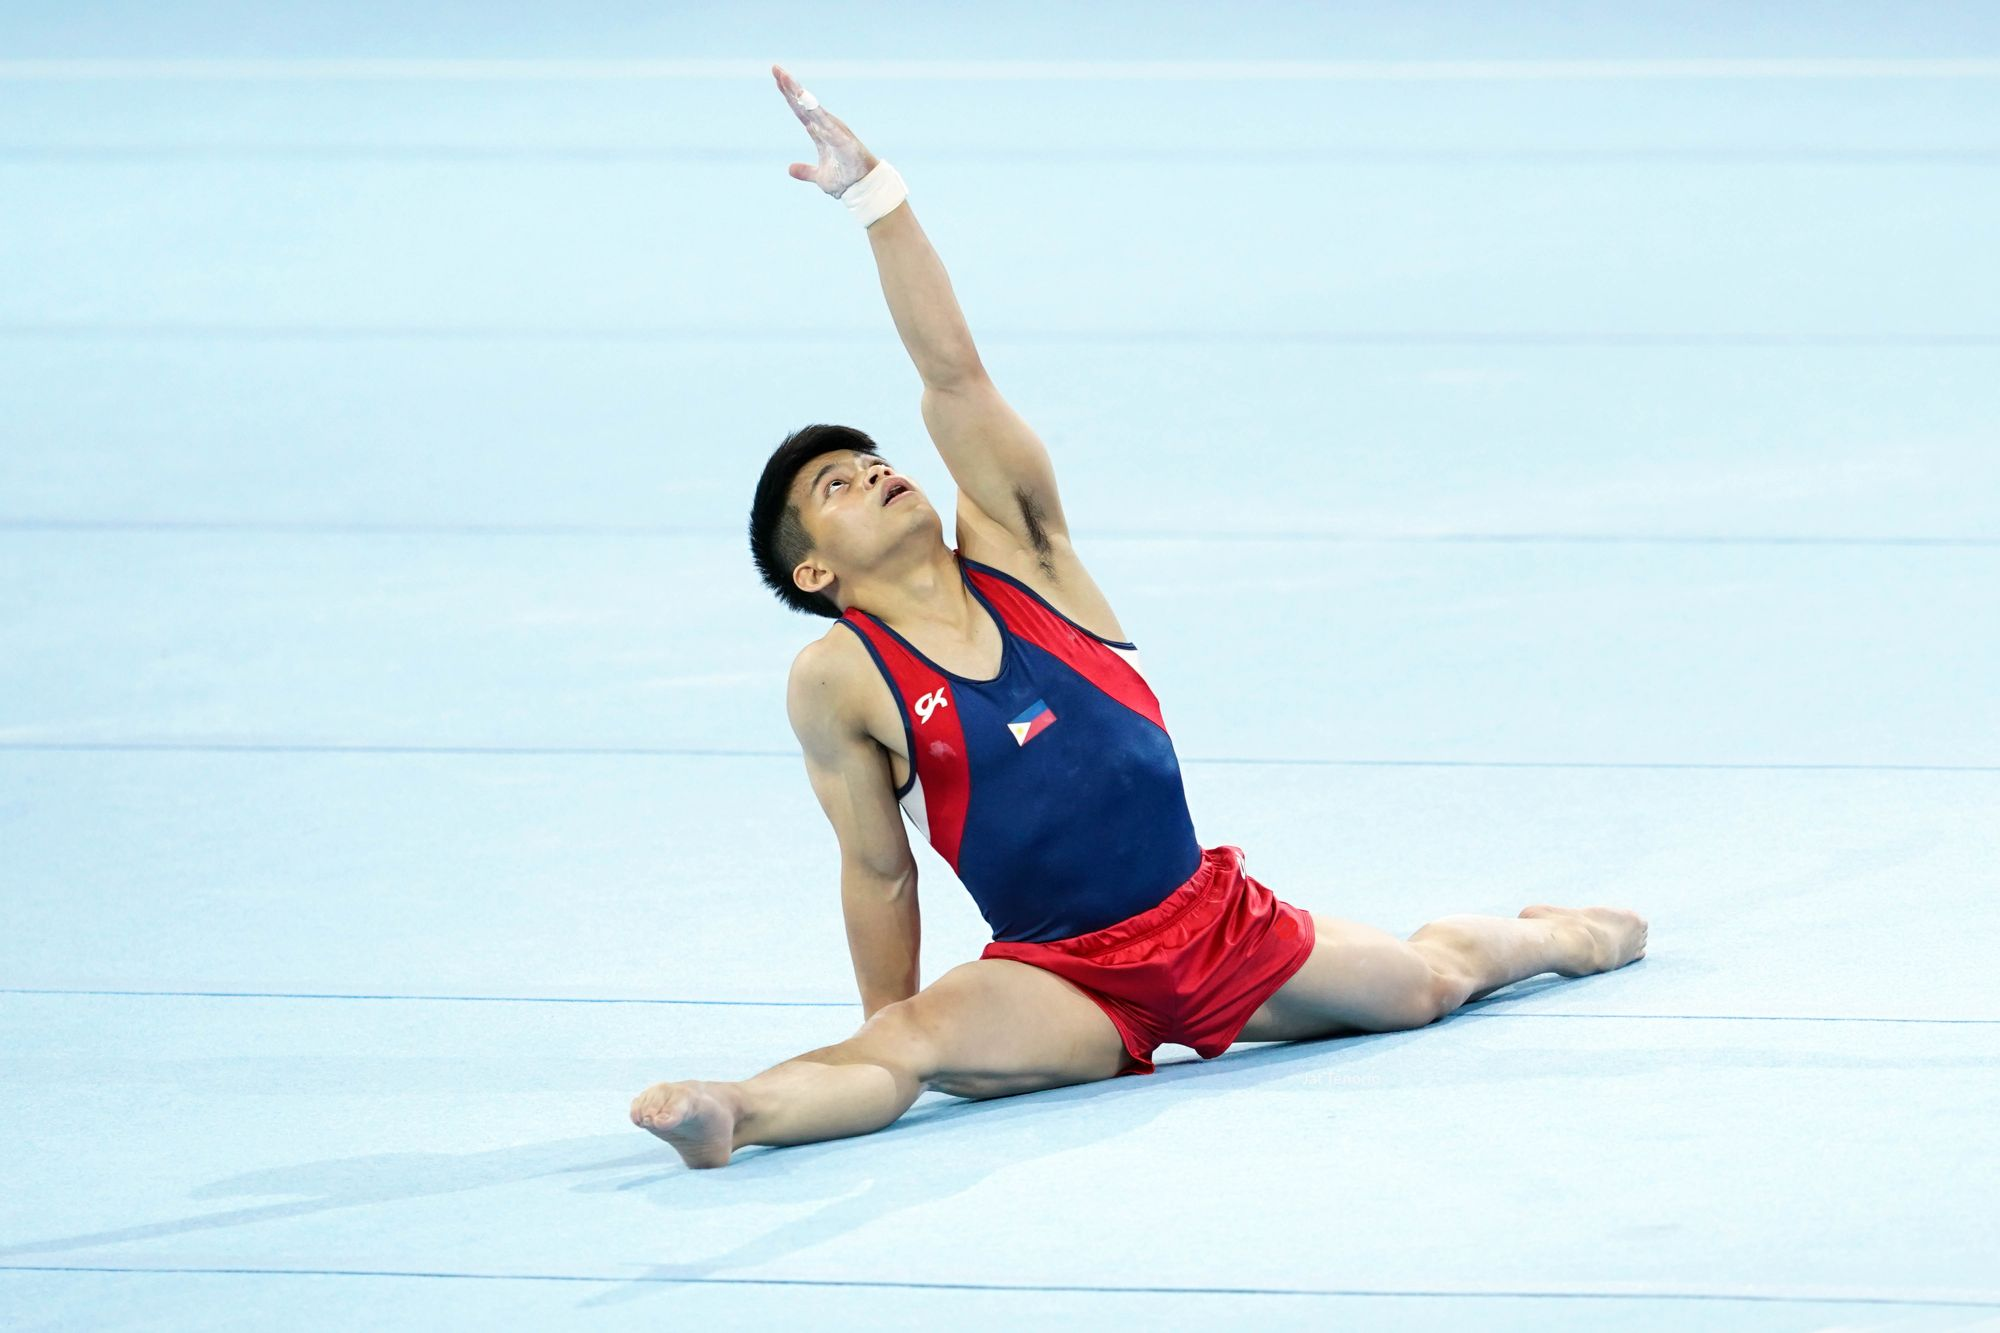 Young Filipino Gymnast Carlos Yulo Is The Philippines' First World Champion